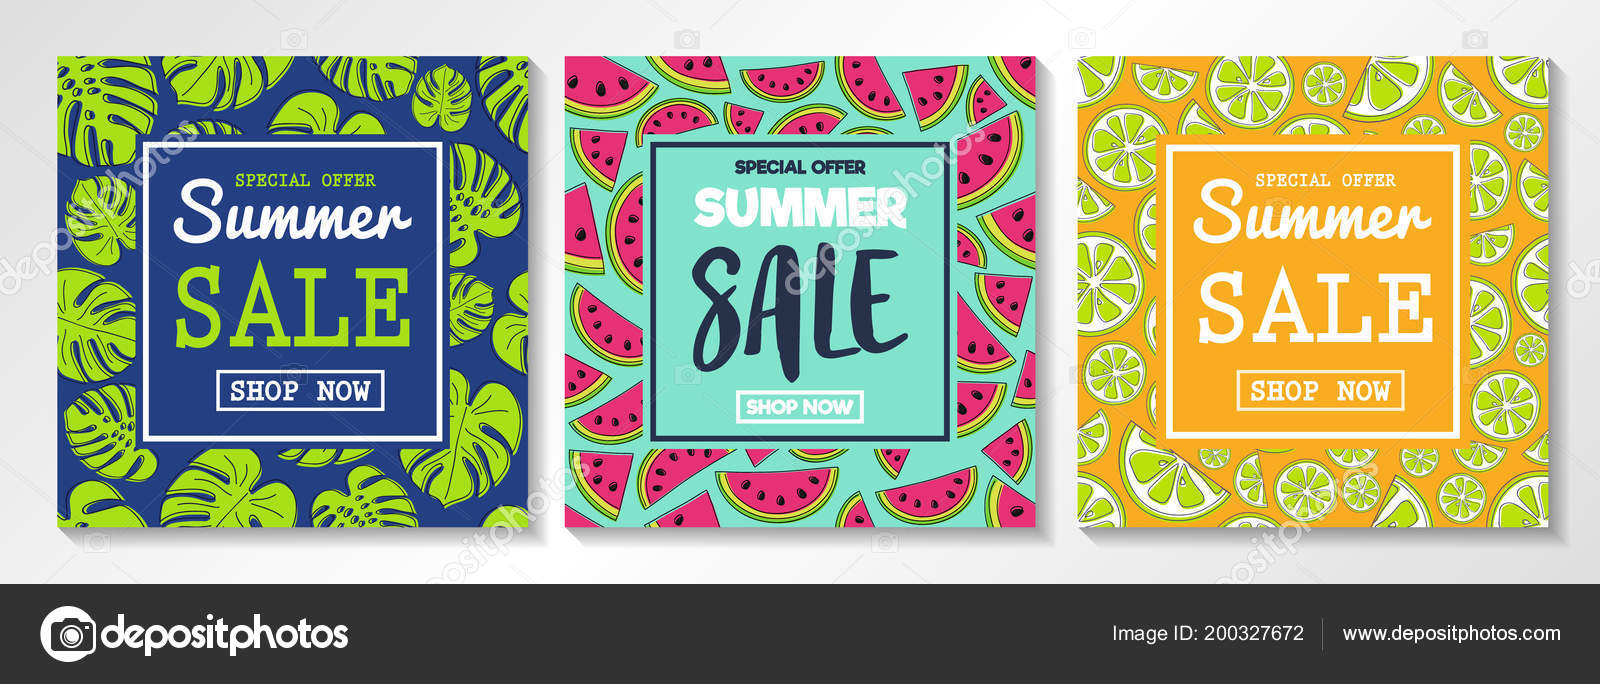 collection flyers summer sales concept watermelons citrus fruits